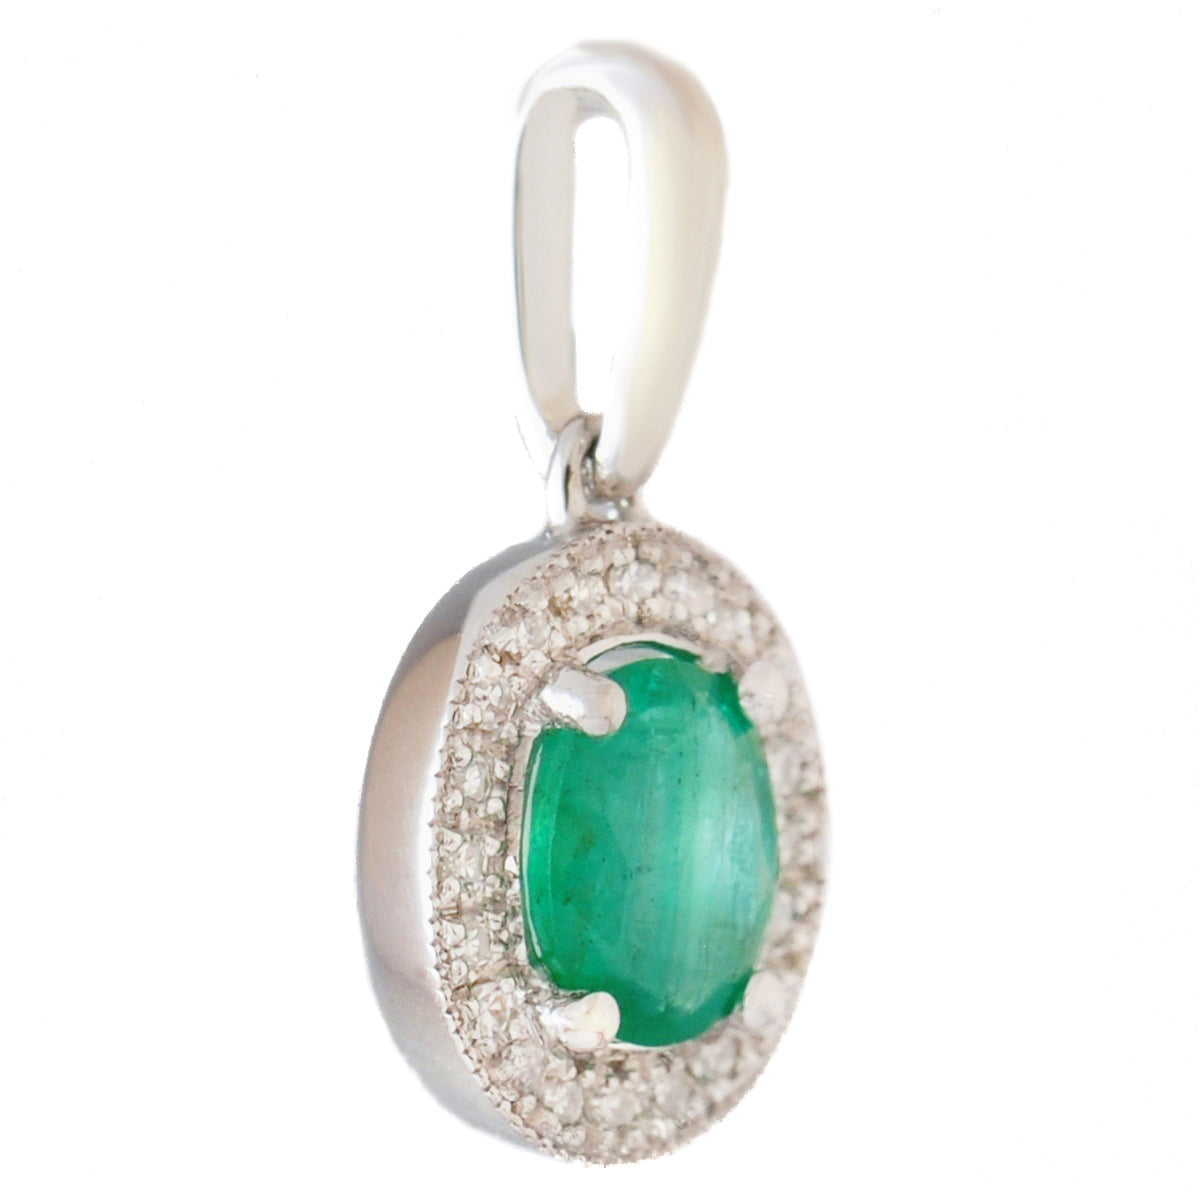 9K SOLID WHITE GOLD 0.40CT NATURAL EMERALD PENDANT WITH 20 DIAMONDS.